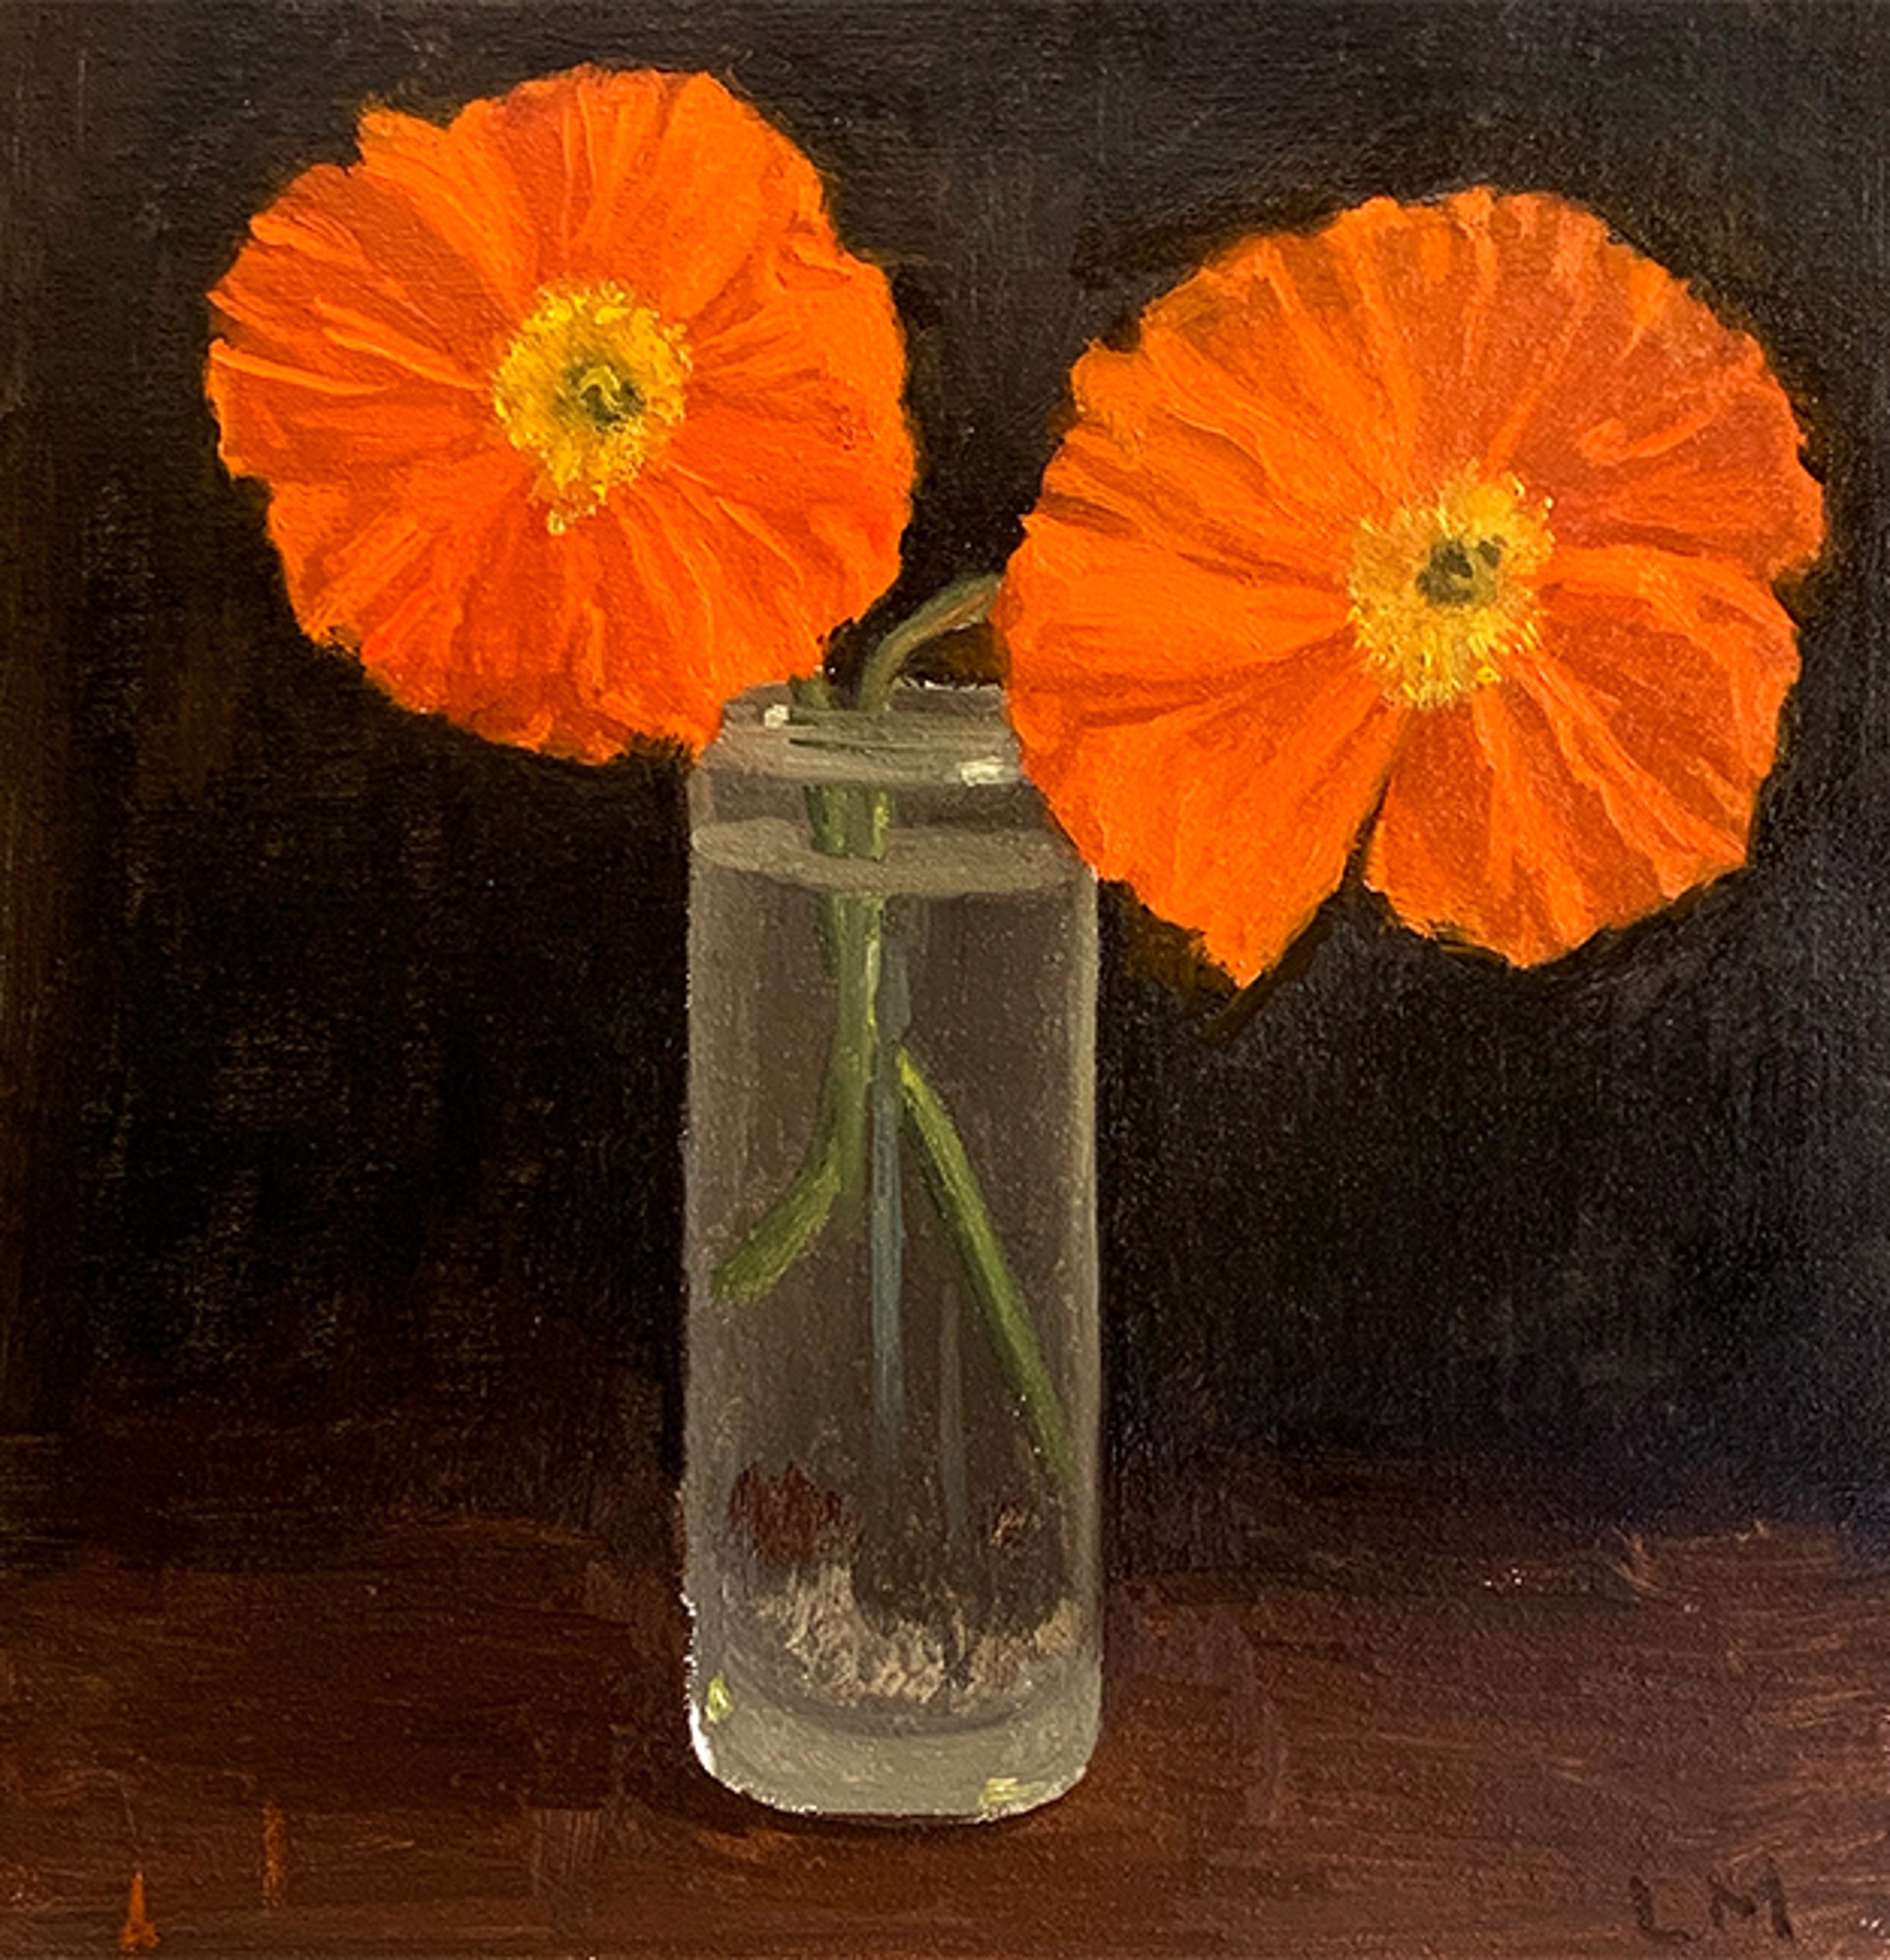 Orange Poppy by Laura Murphey